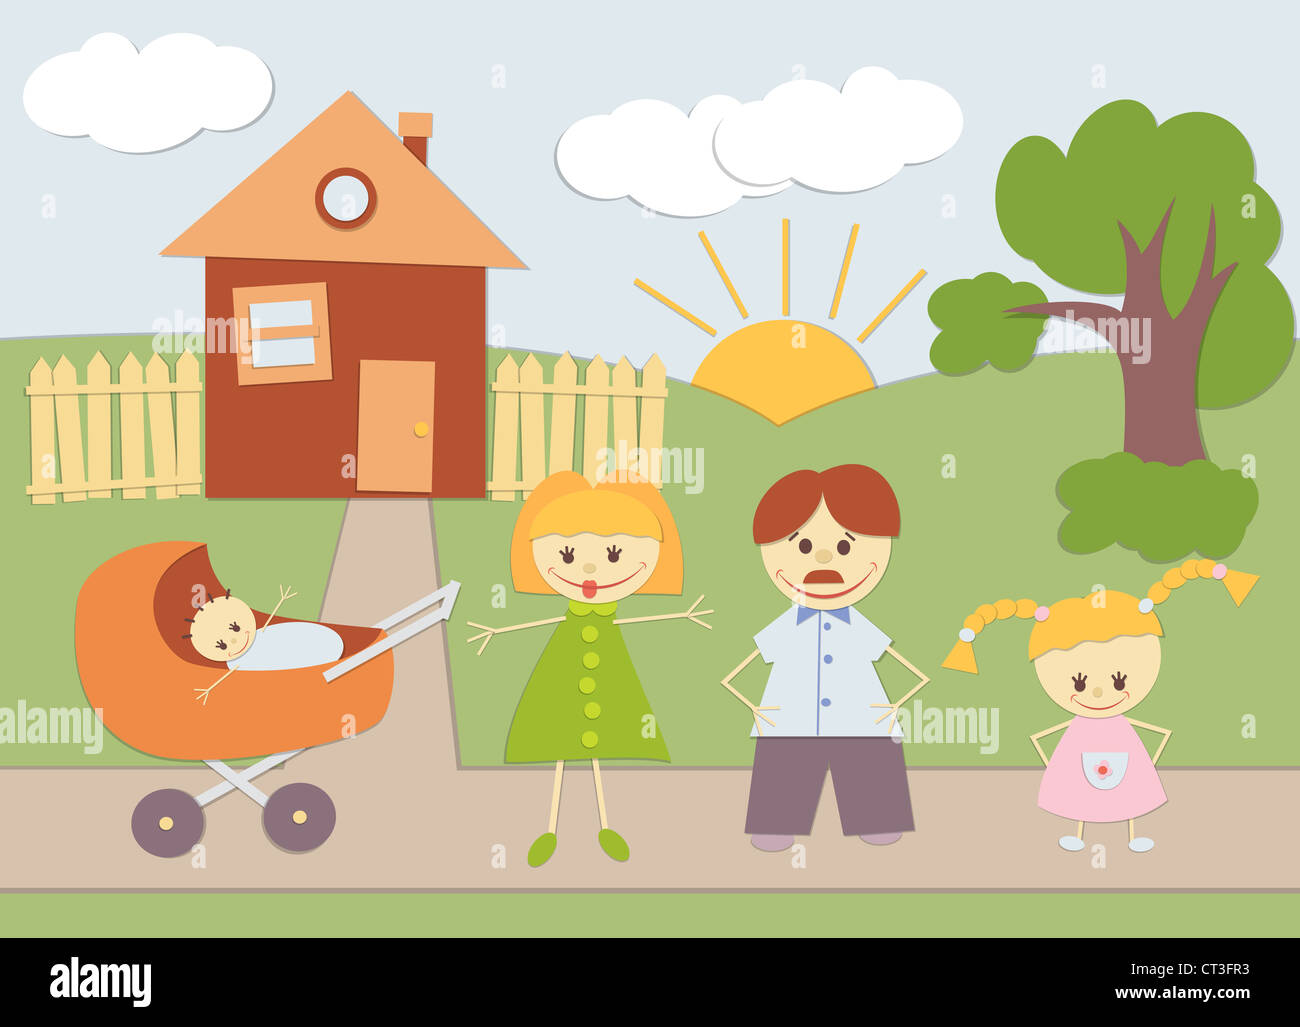 Baby Applique family background at home. - Stock Image